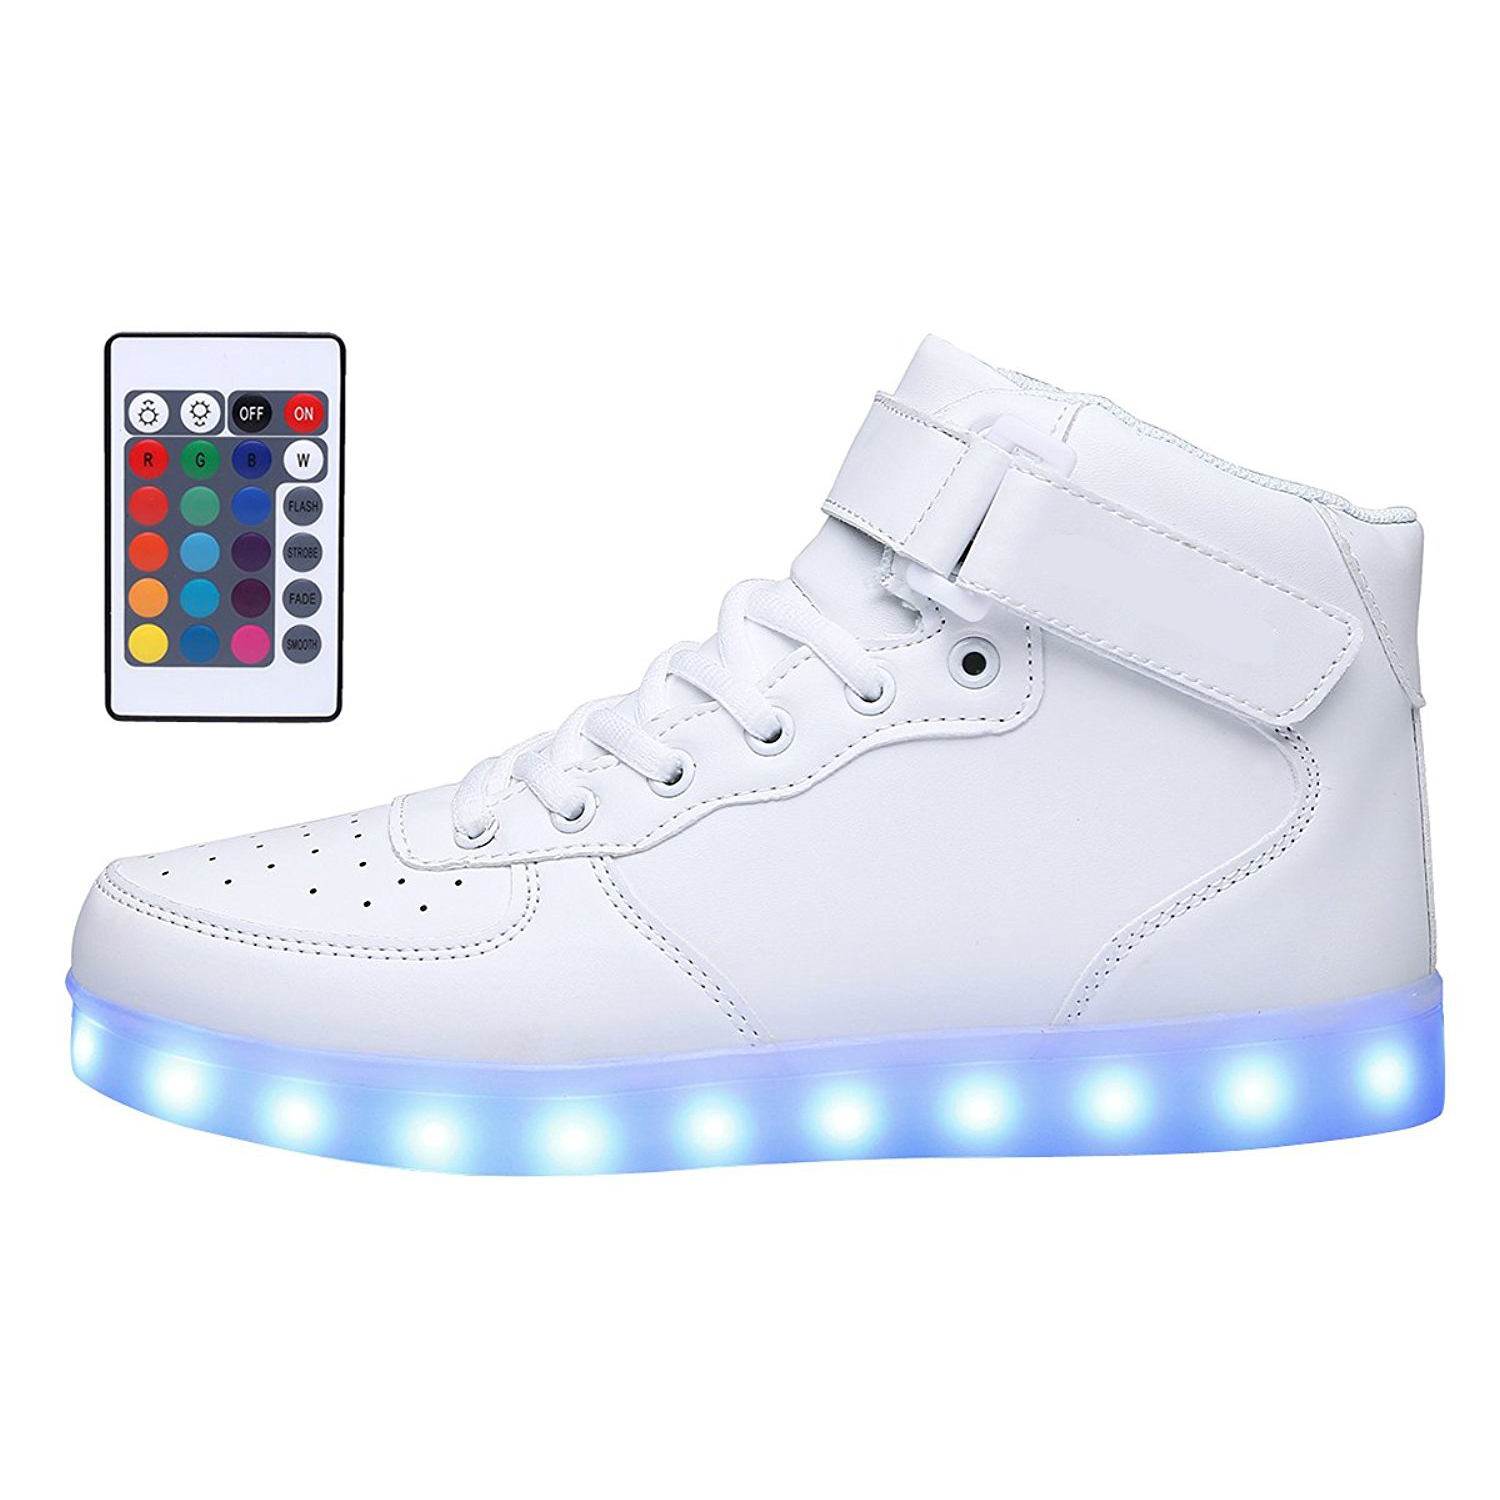 KRIATIV Adult Kids USB Charging High Top LED Shoes Light Up Flashing Sneakers Glowing Luminous Slippers for Boy Girl Light Shoe in Sneakers from Mother Kids